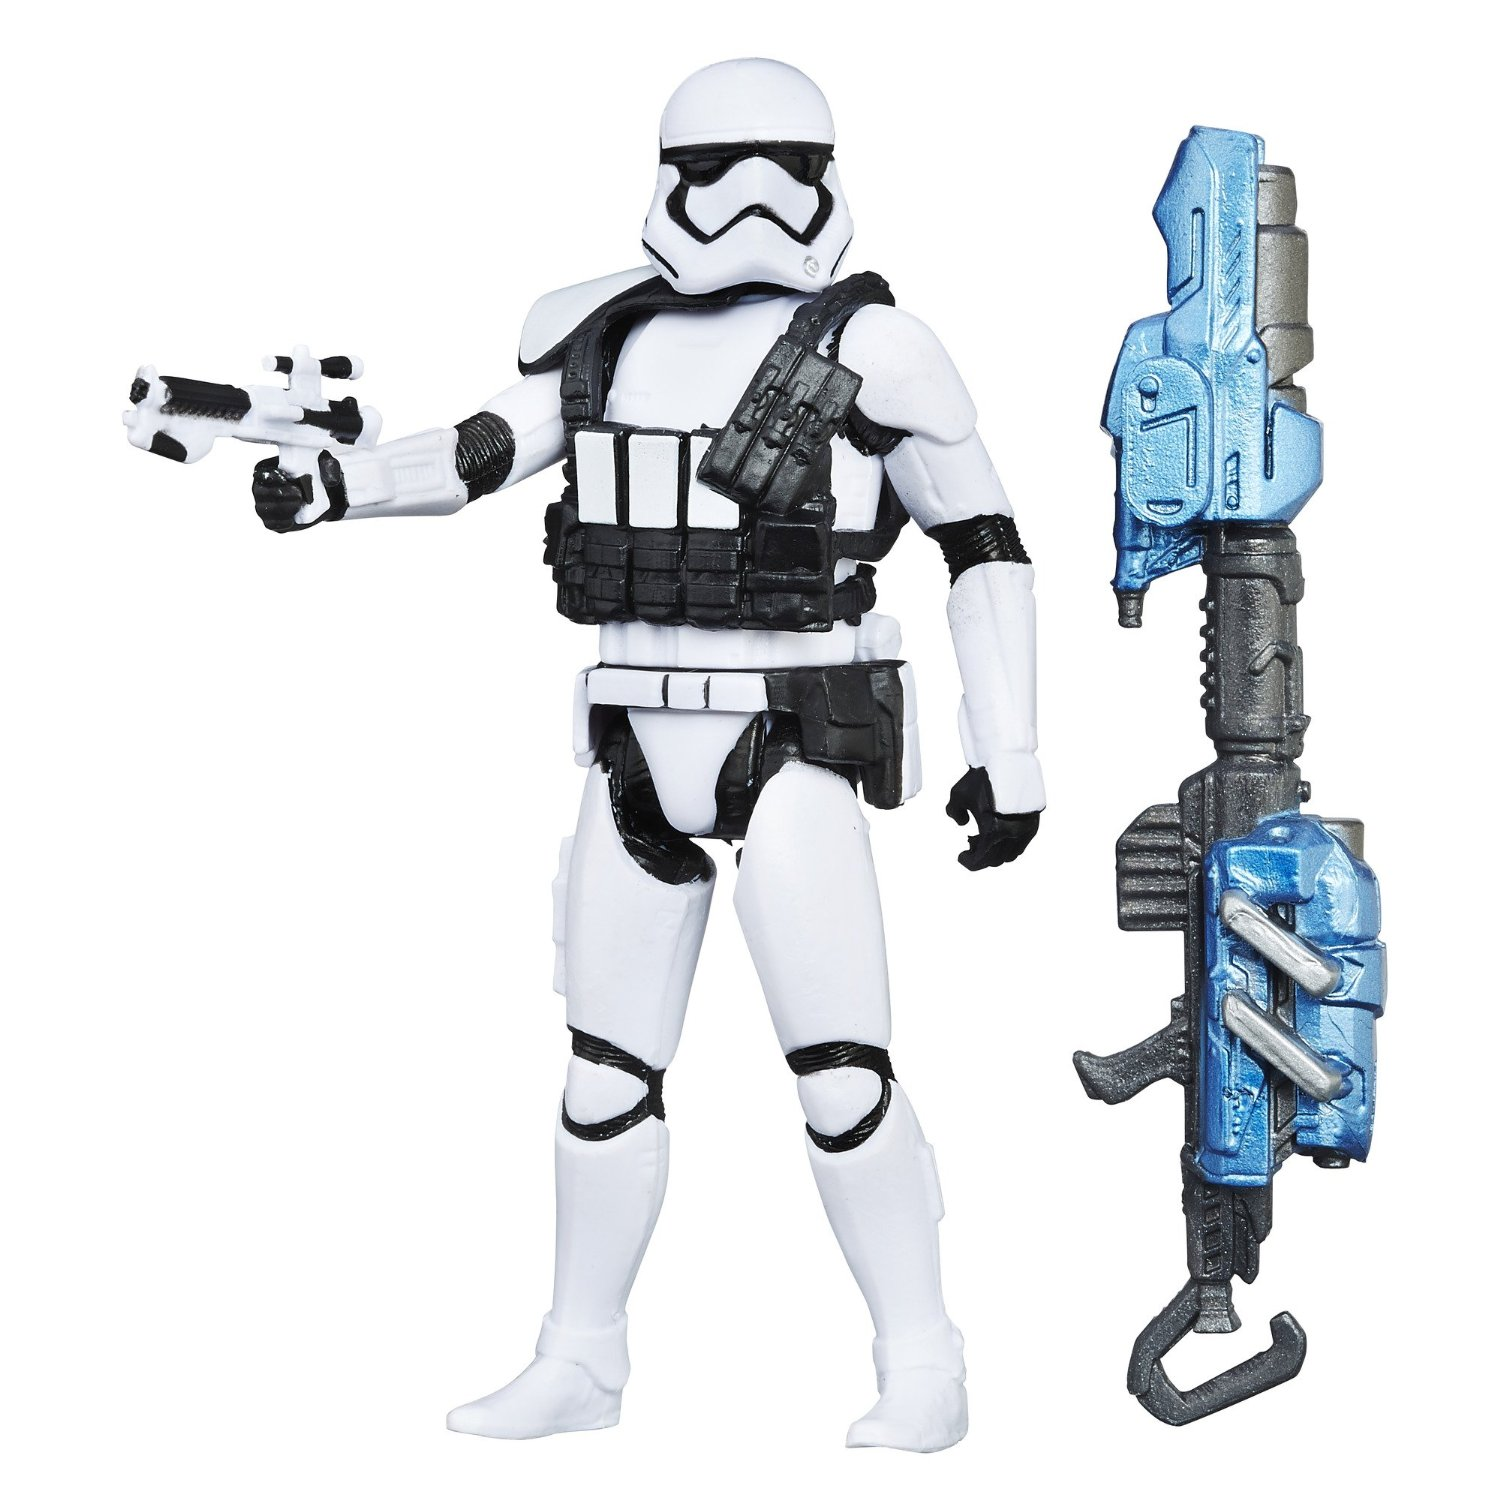 Star Wars The Force Awakens: First Order Stormtrooper Squad Leader